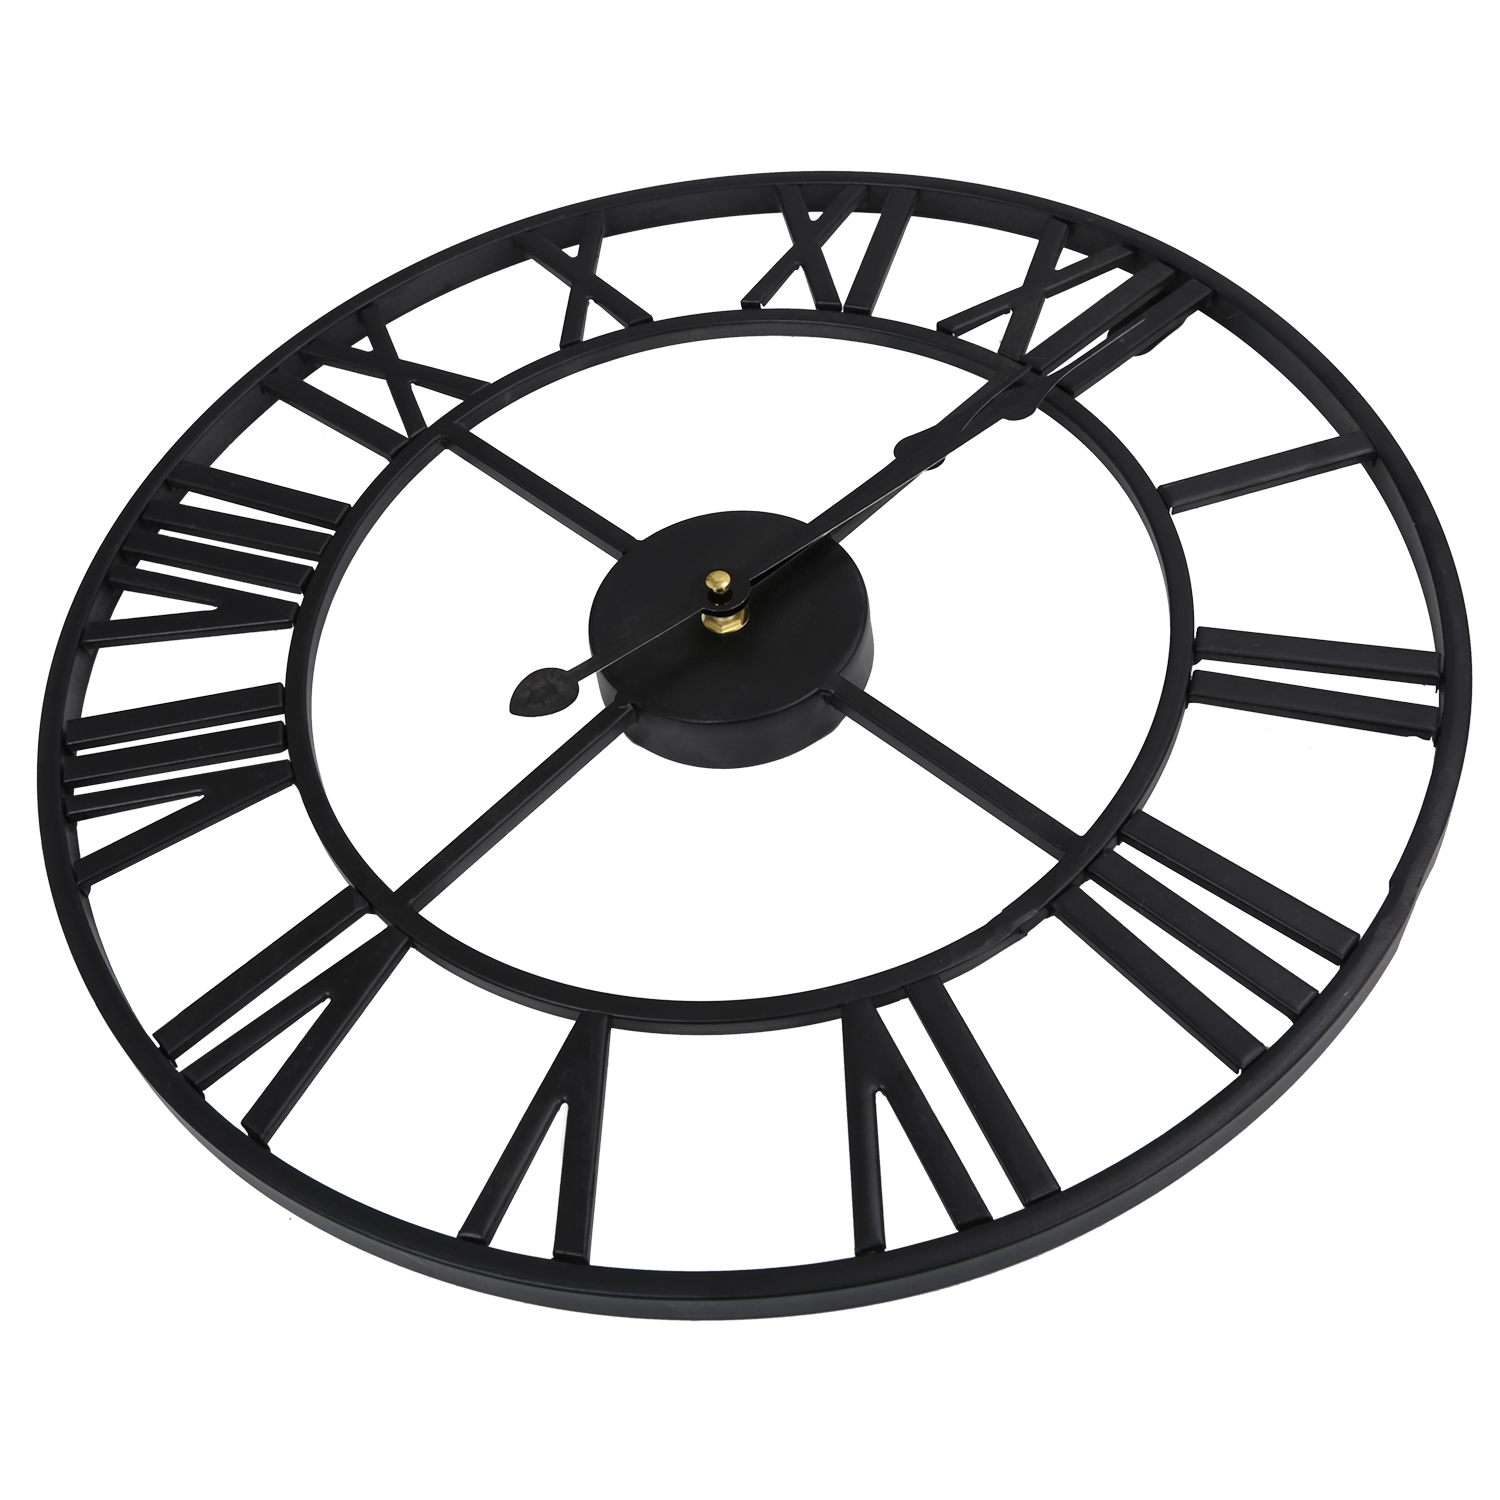 7f018e0fd39e HOT LARGE OUTDOOR GARDEN WALL CLOCK BIG ROMAN NUMERALS GIANT OPEN FACE  METAL-in Wall Clocks from Home   Garden on Aliexpress.com